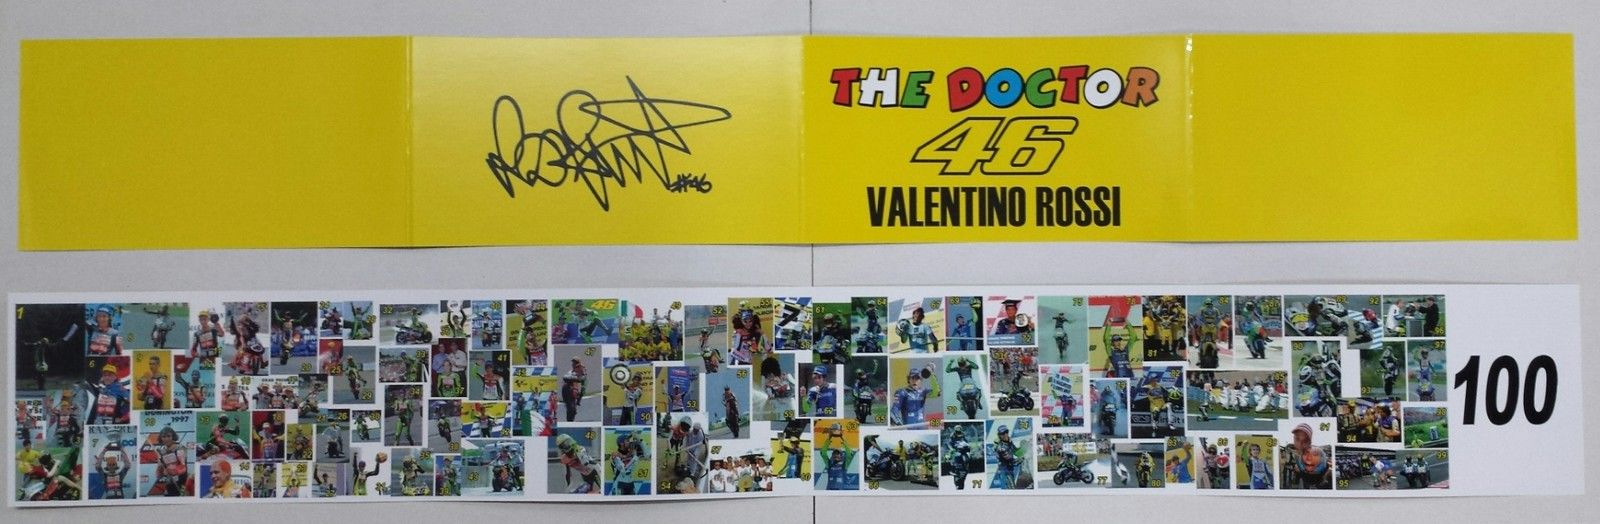 VALENTINO ROSSI 1/12 BANNER 100 VITTORIE IN MOTOGP LIMITED EDITION